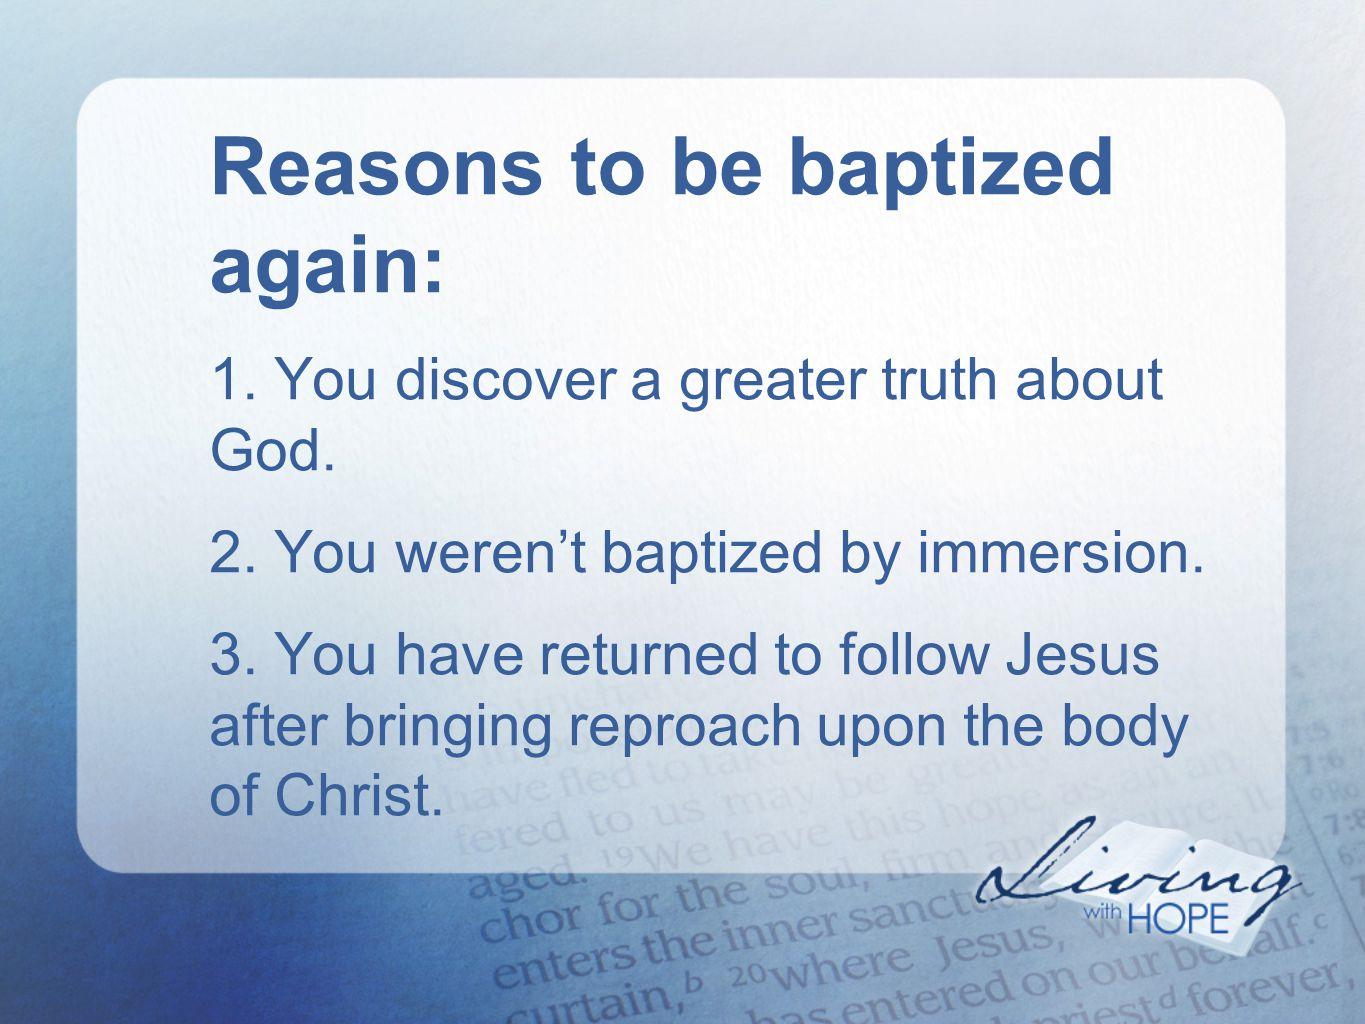 Reasons to be baptized again: 1. You discover a greater truth about God.